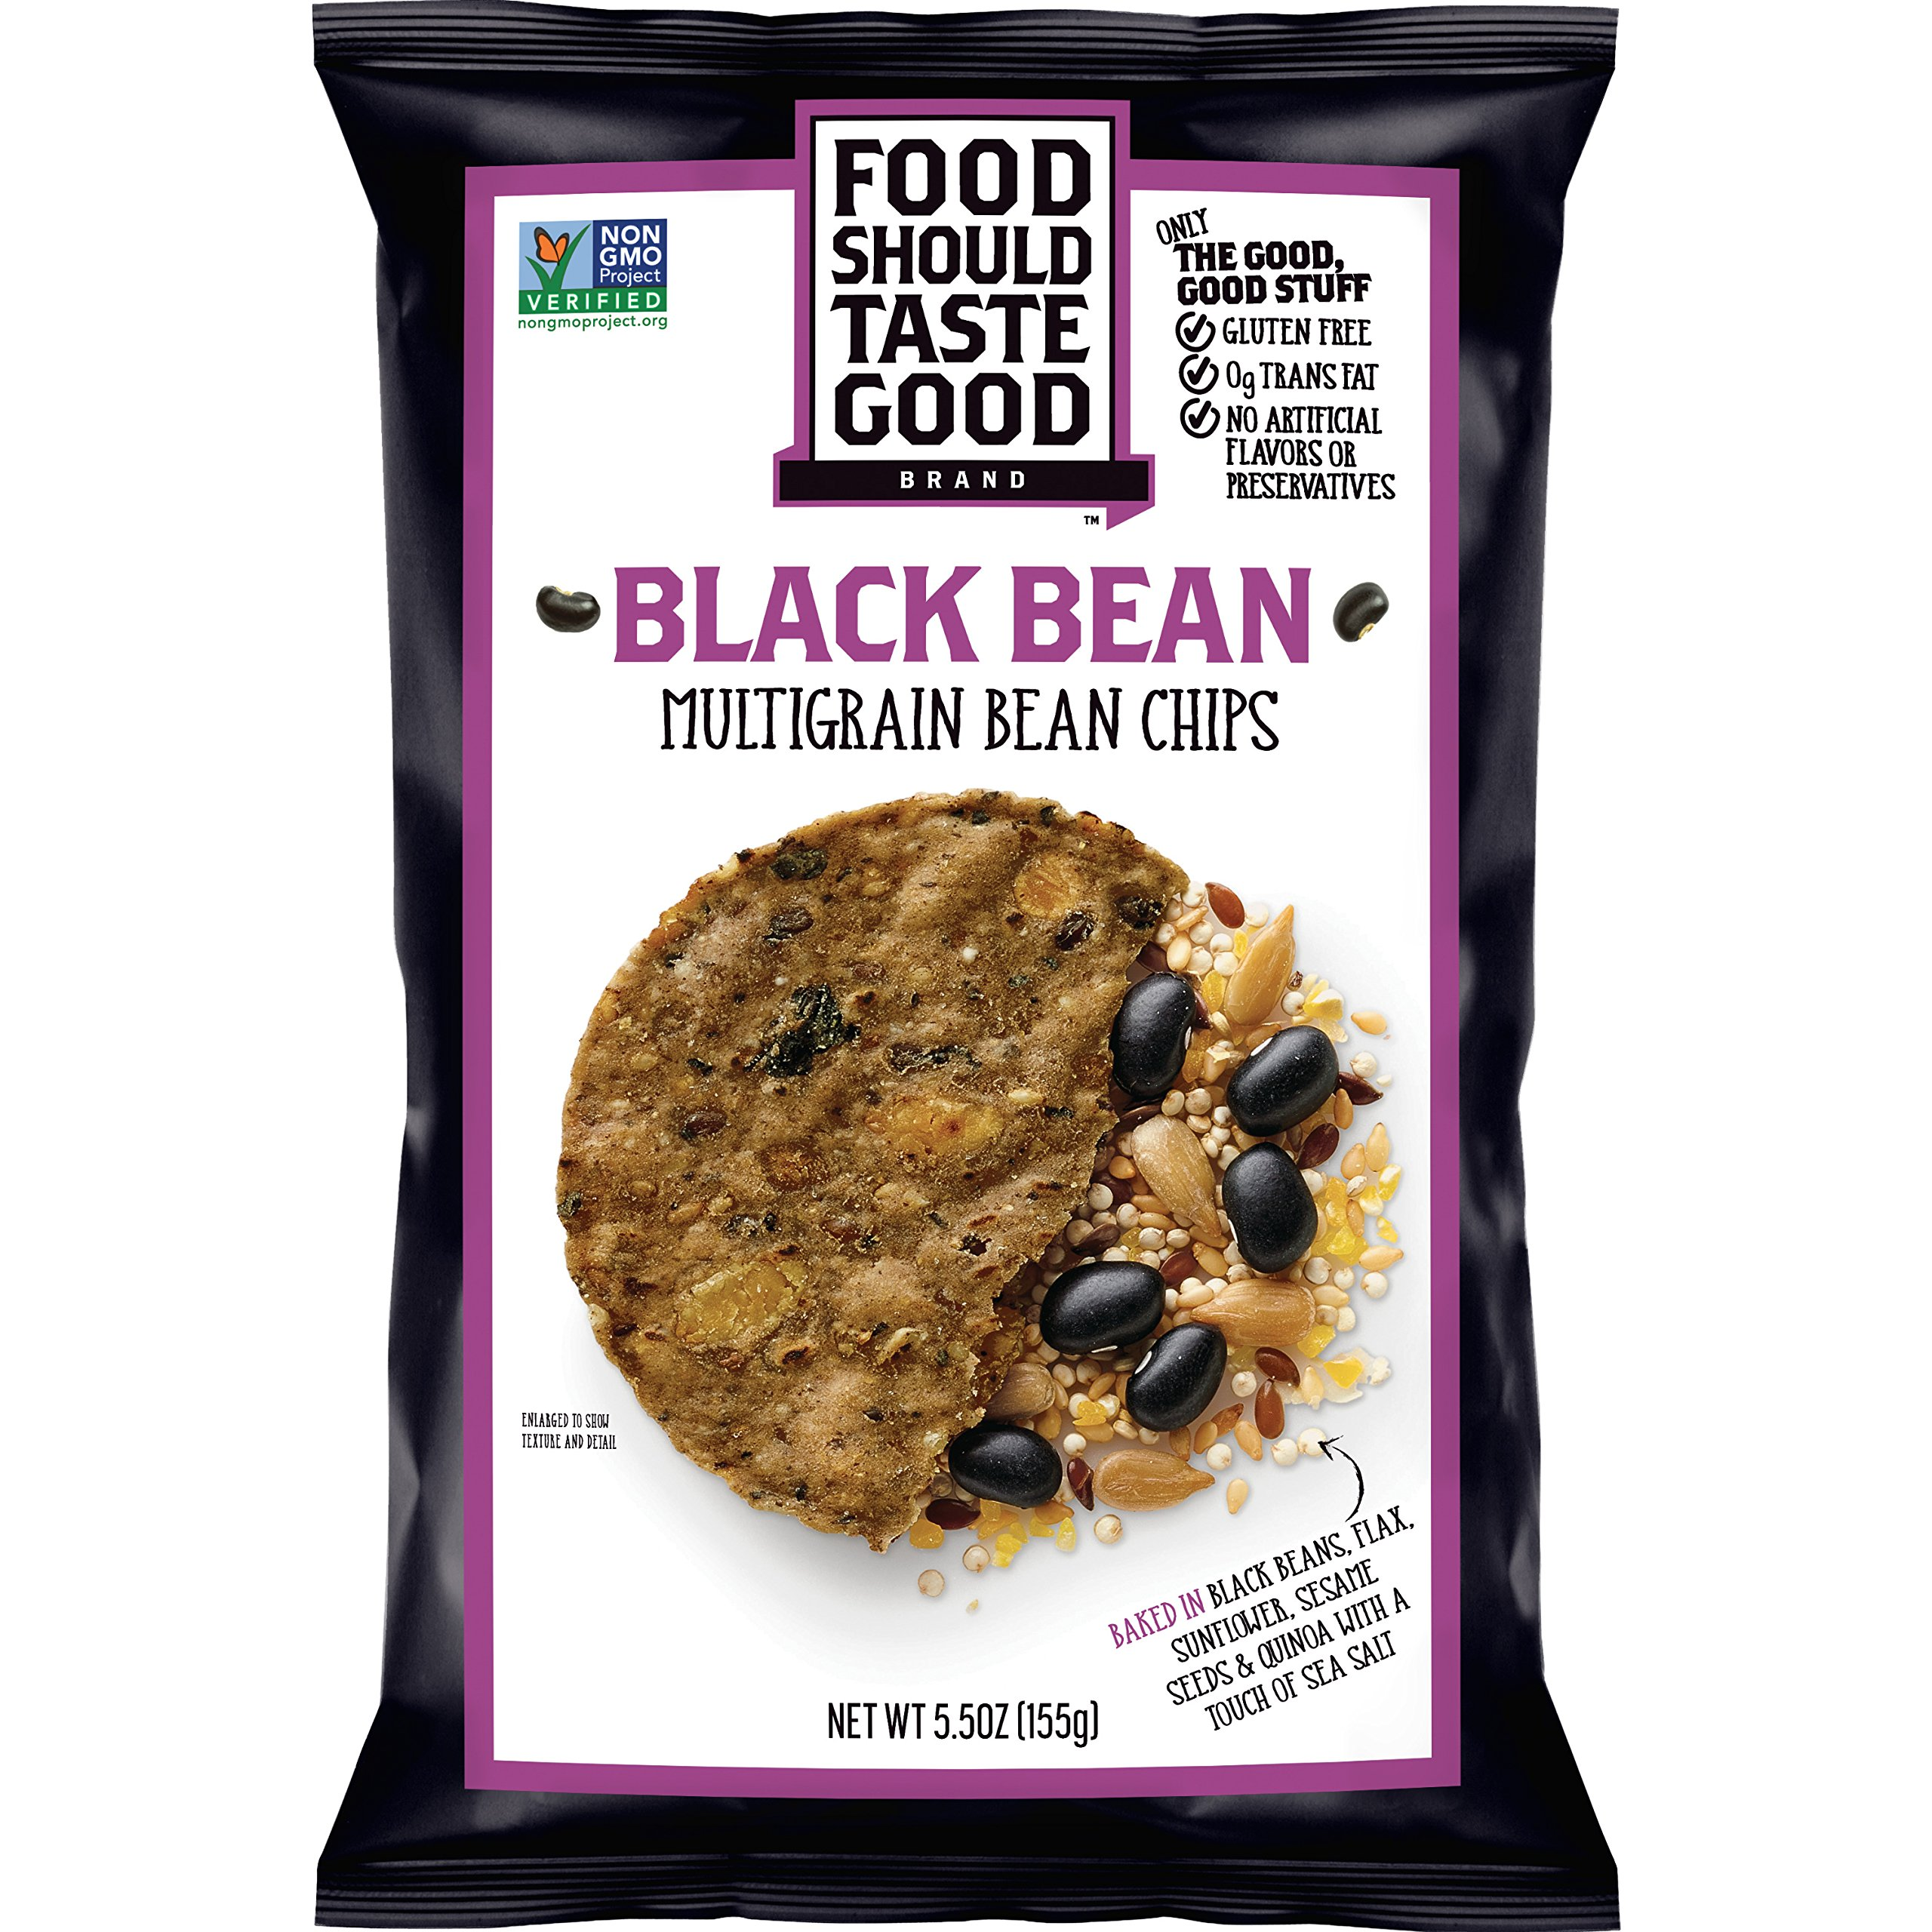 Food Should Taste Good, Tortilla Chips, Multigrain Bean Chips, Black Bean, 5.5 oz (Pack of 12)